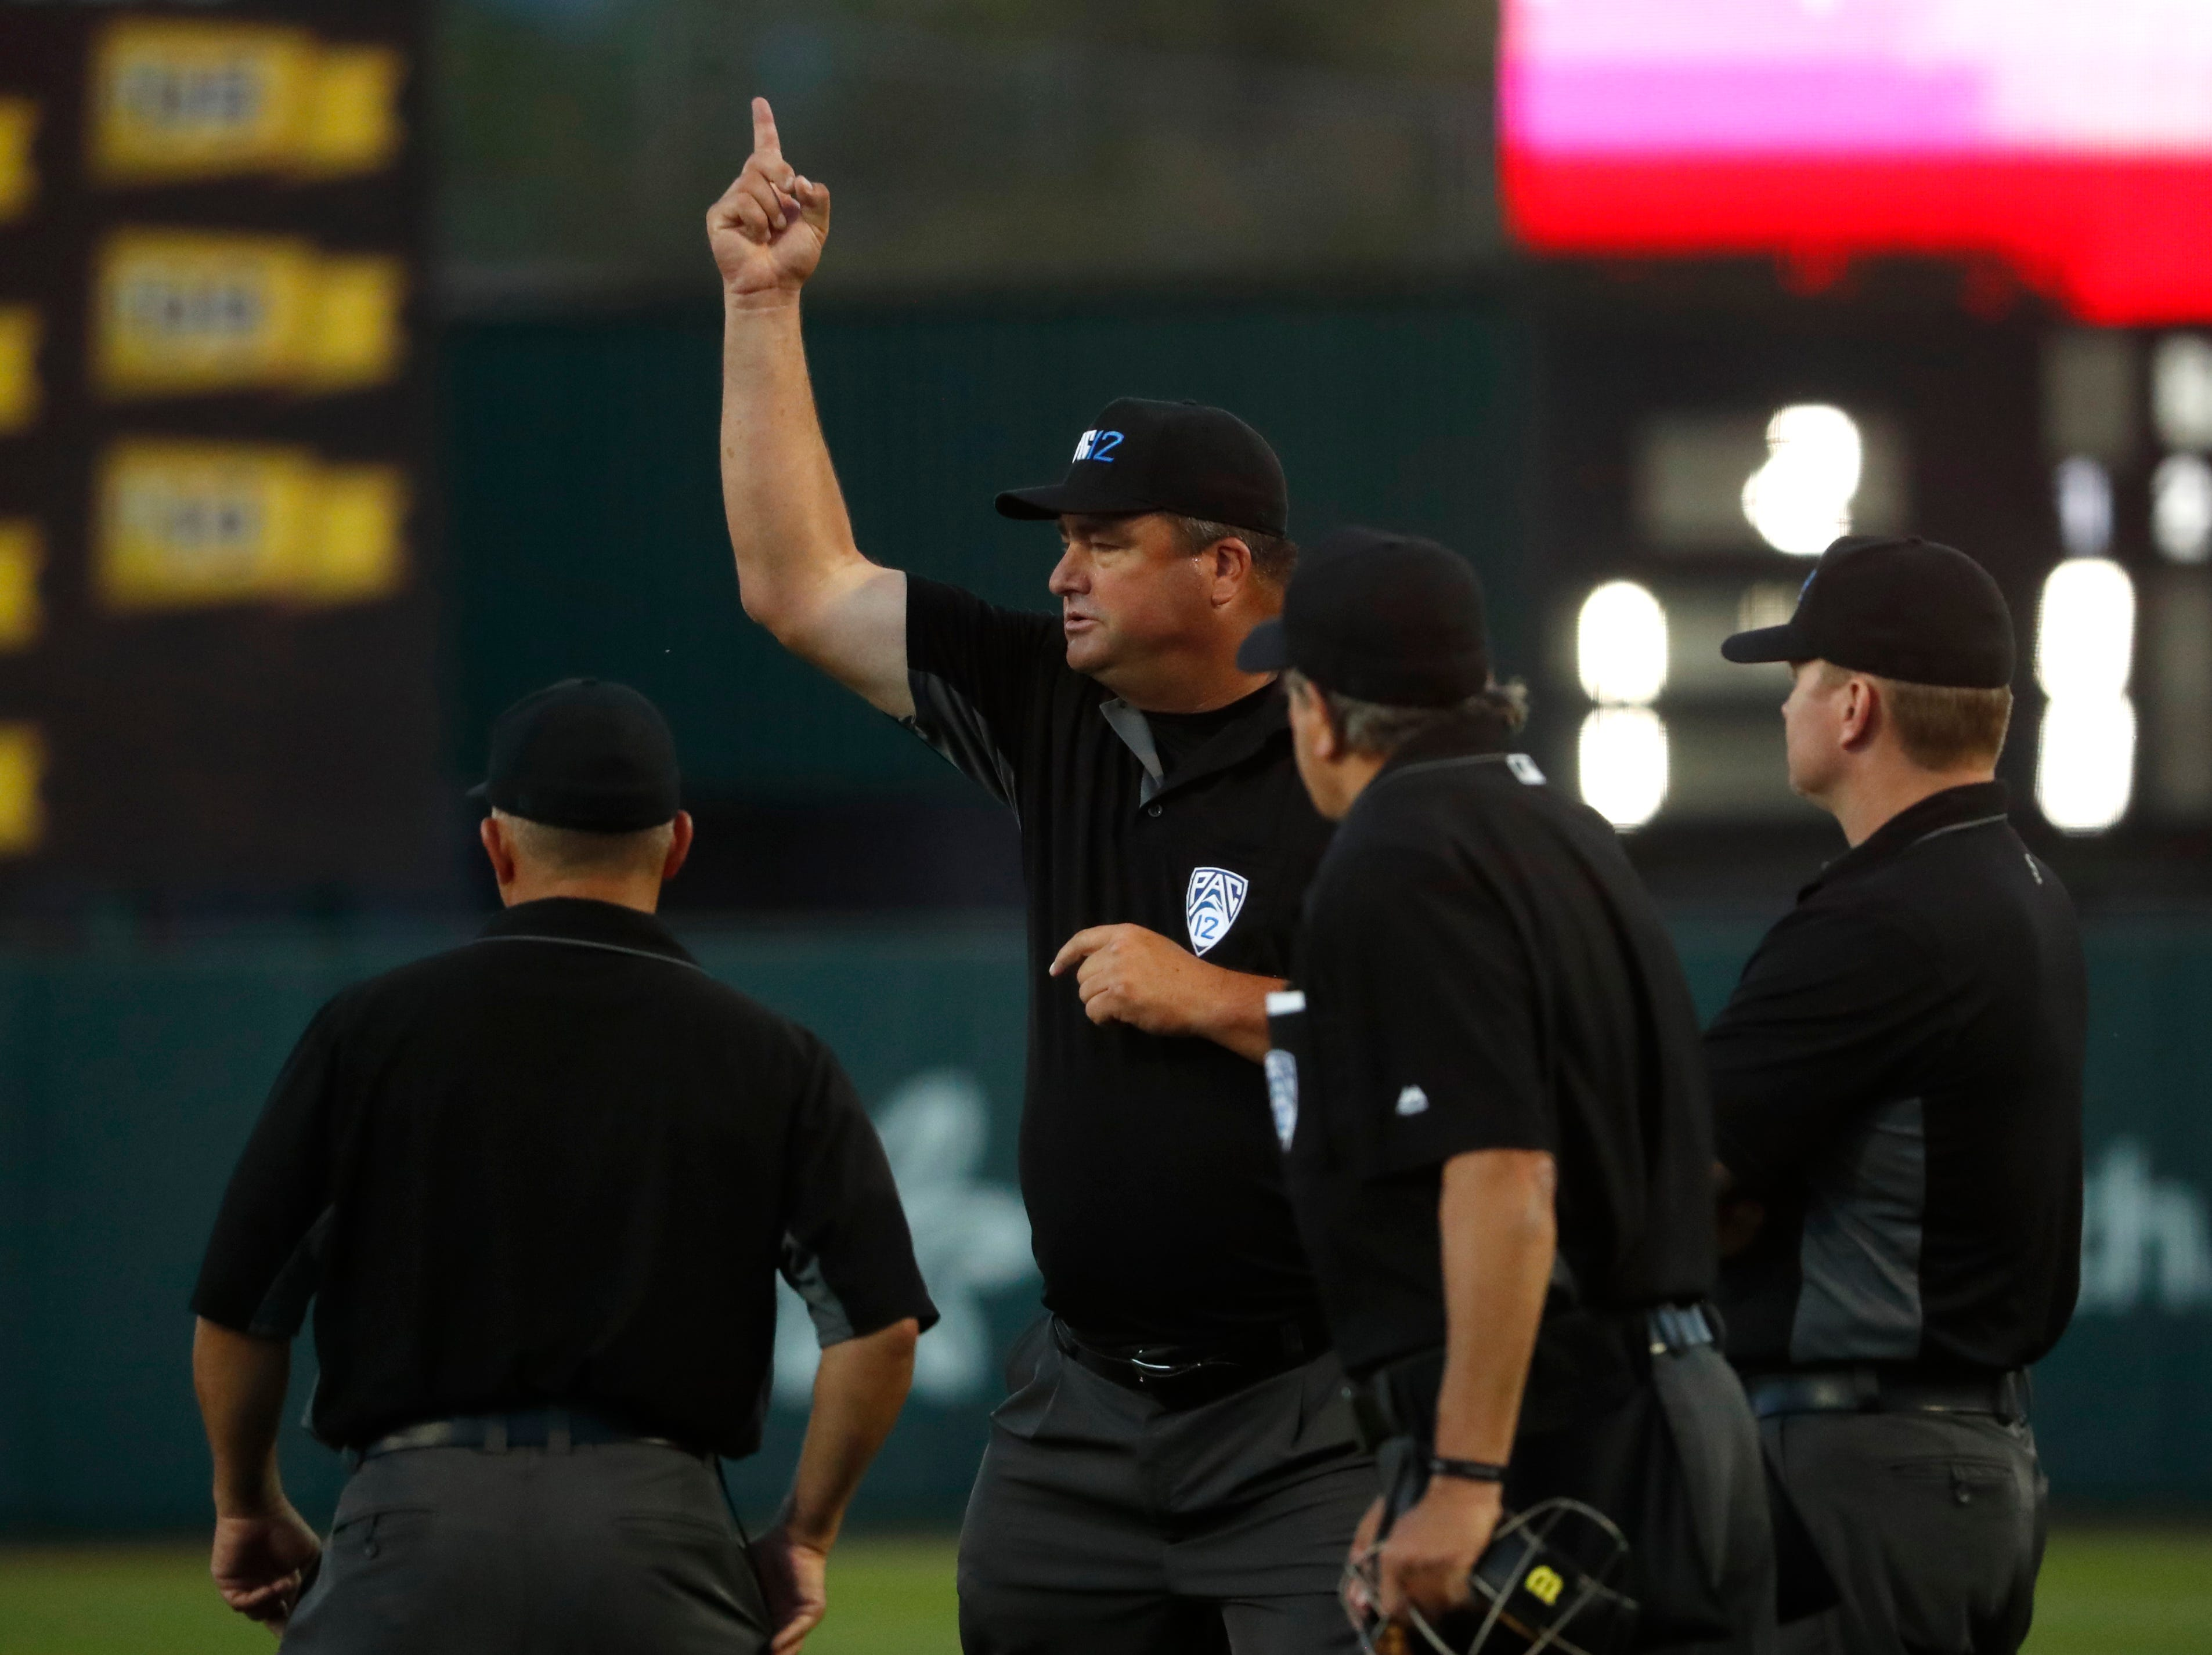 After a visit, home plate umpire Joe Burleson signals to change ASU's Carter Aldrete's double to a home run during the sixth inning at Phoenix Municipal Stadium in Phoenix, Ariz. on May 24, 2019.